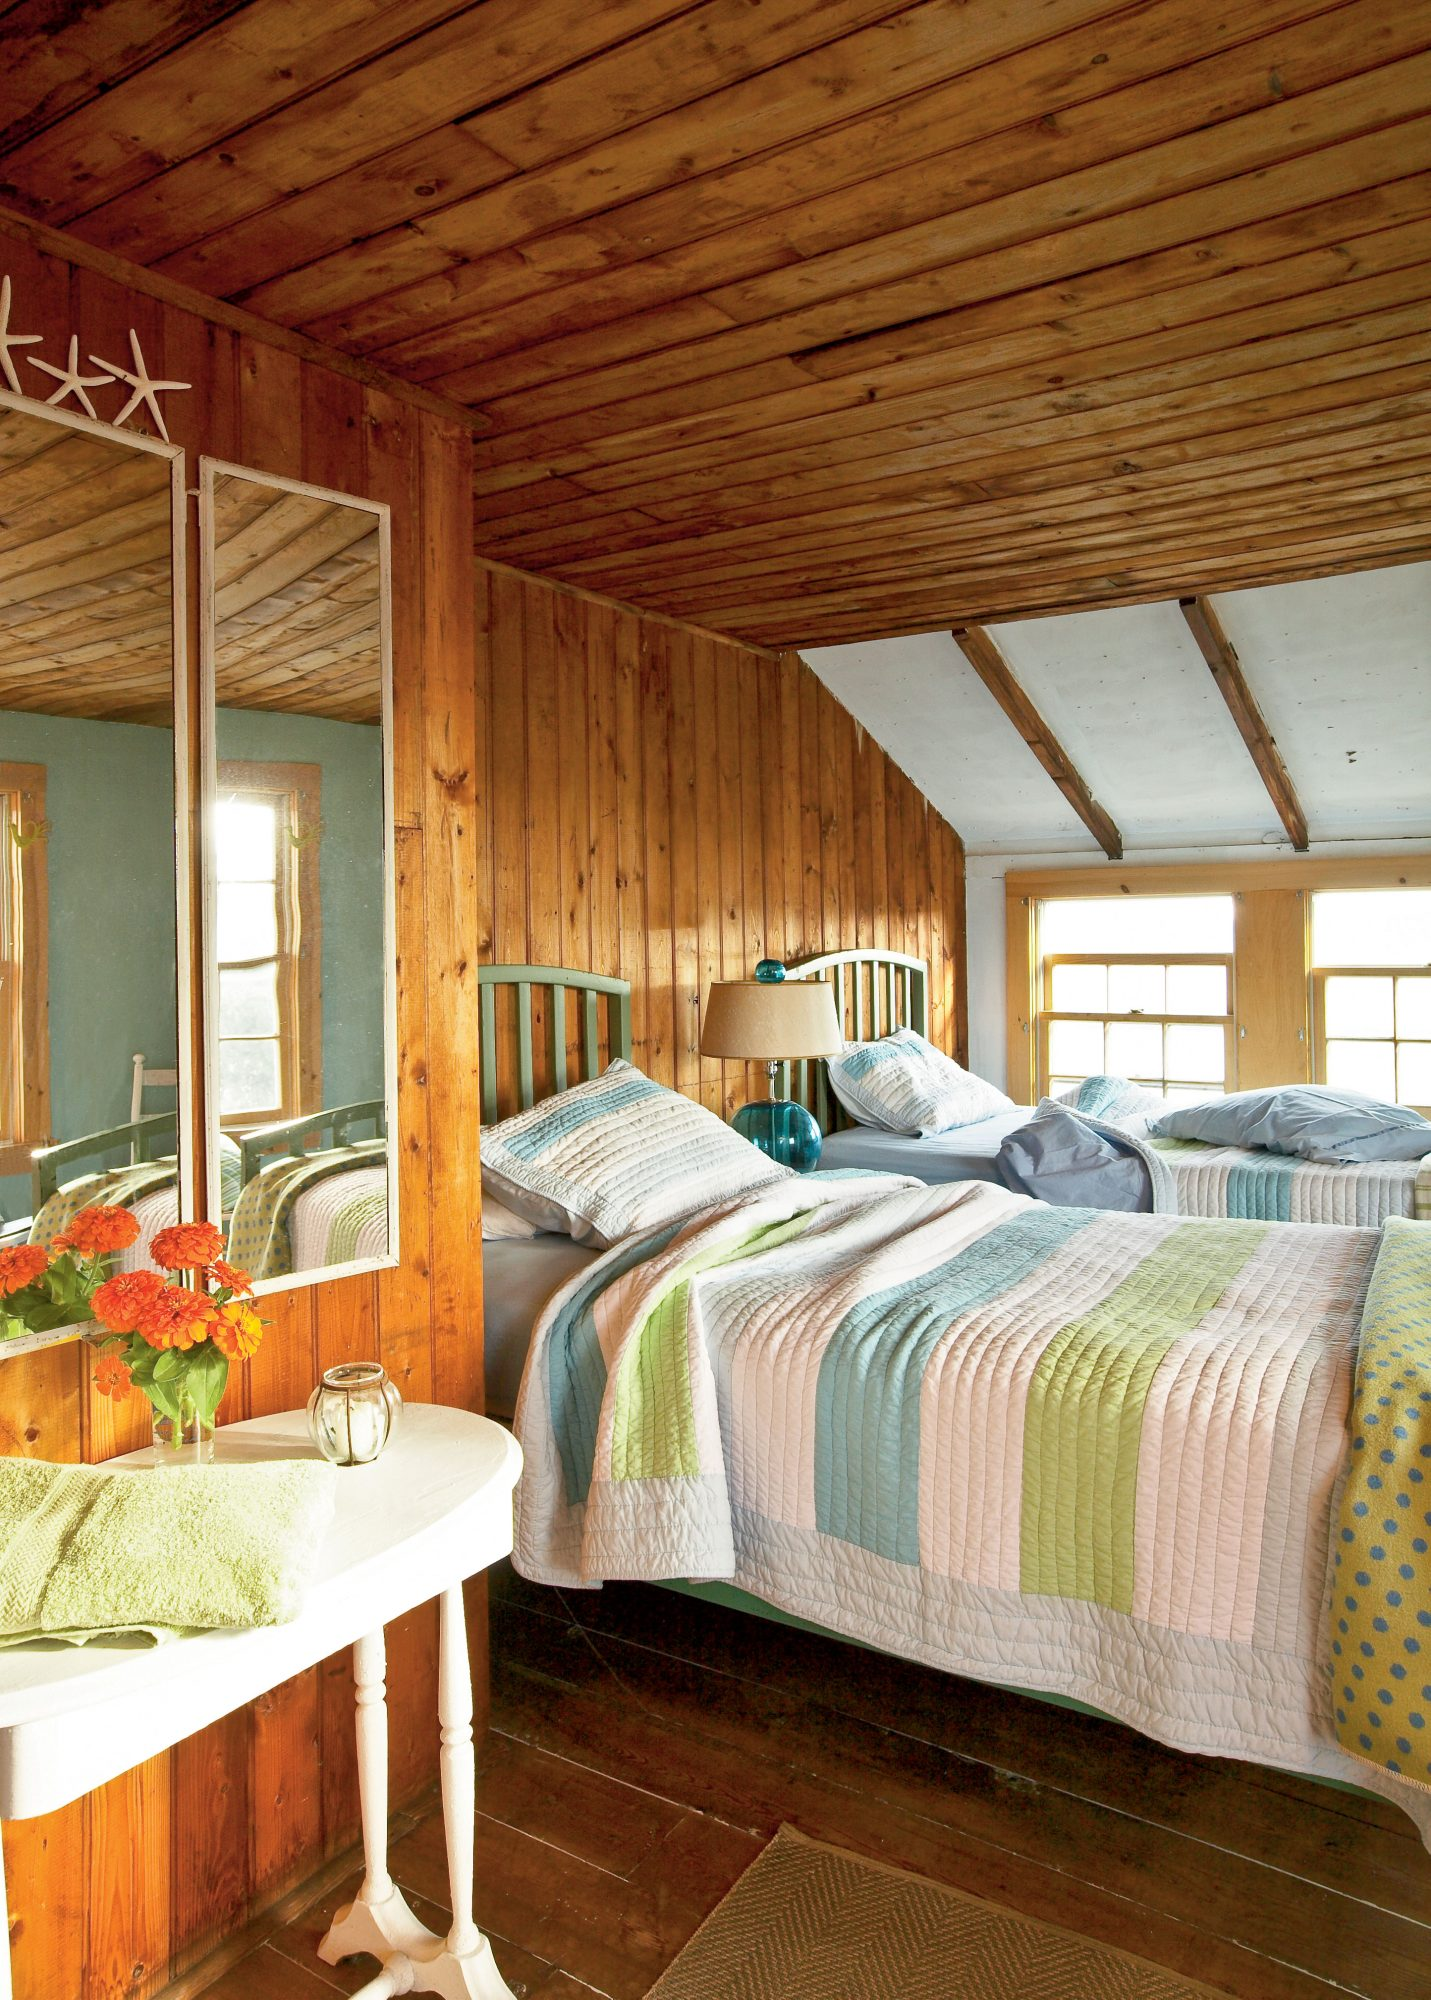 Wood-planked floors and cozy quilts made of light, sea-colored pastels honor the rustic feel of the century-old cottage, embracing the charm of the setting and the house.